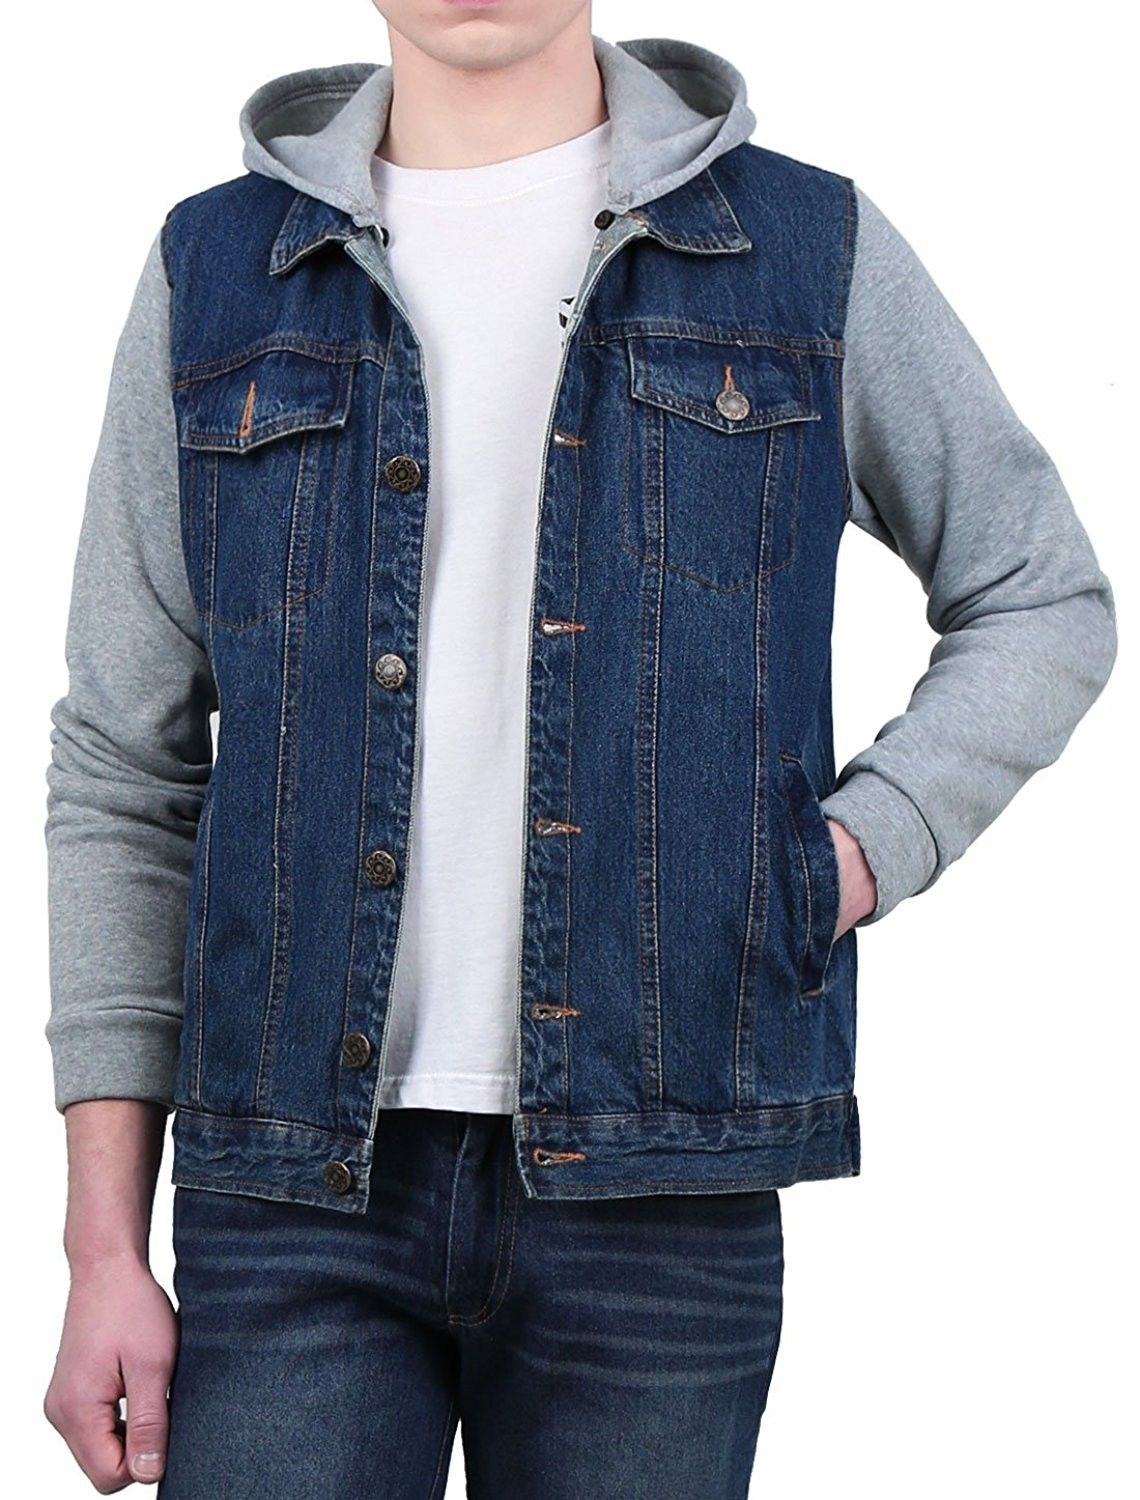 e369b1ad33 Men Removable Hood Single Breasted Long Sleeves Denim Hoodies Jacket - Blue  - C112O6SEJ7V